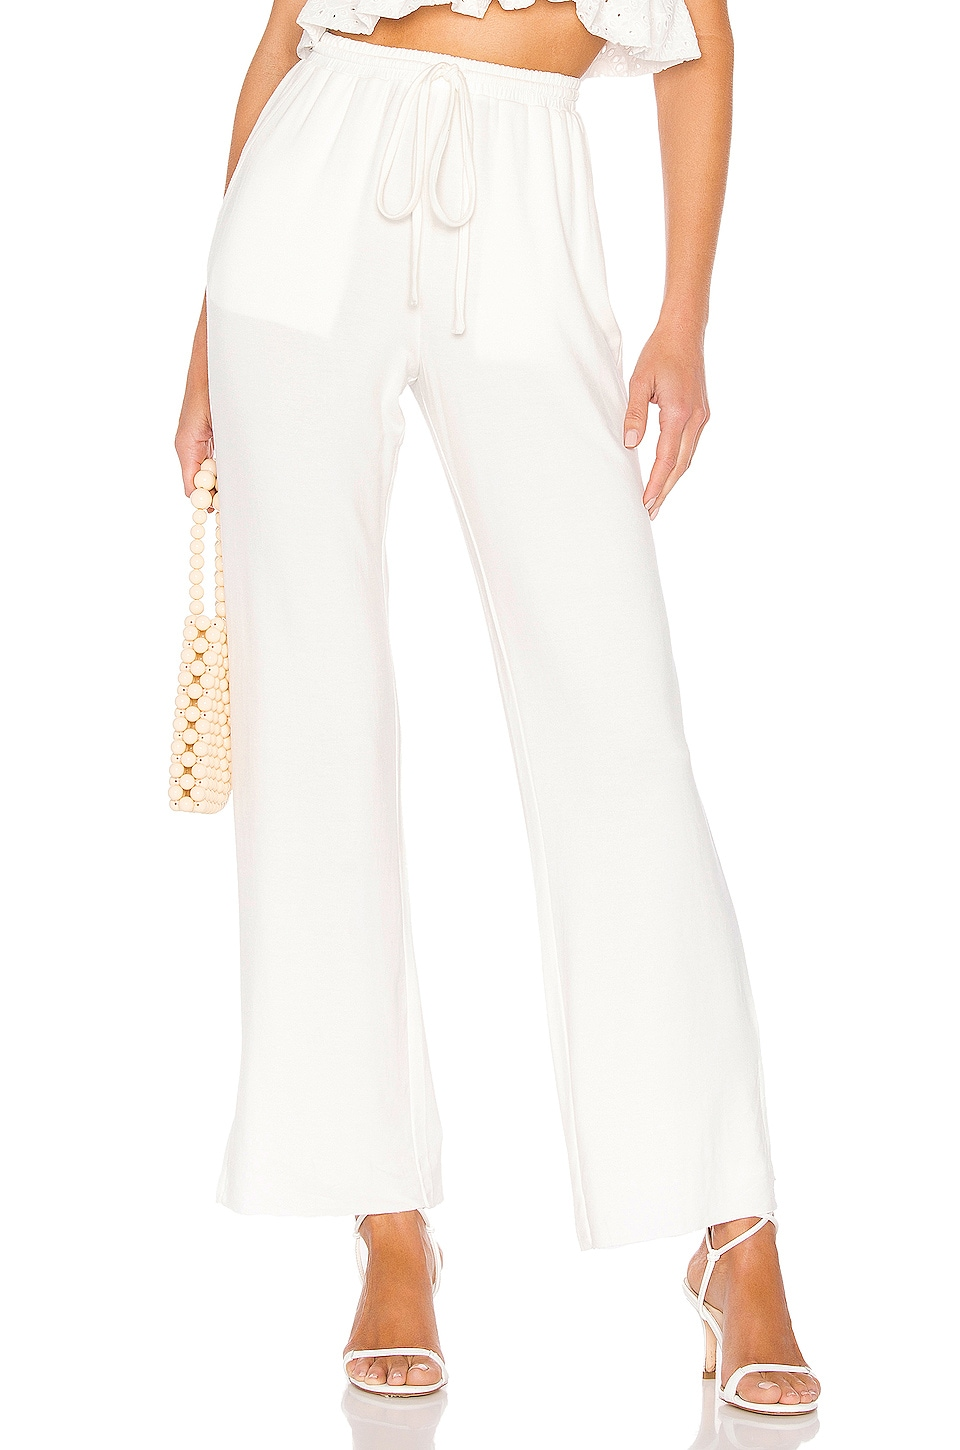 Lovers + Friends Kassidy Pants in White